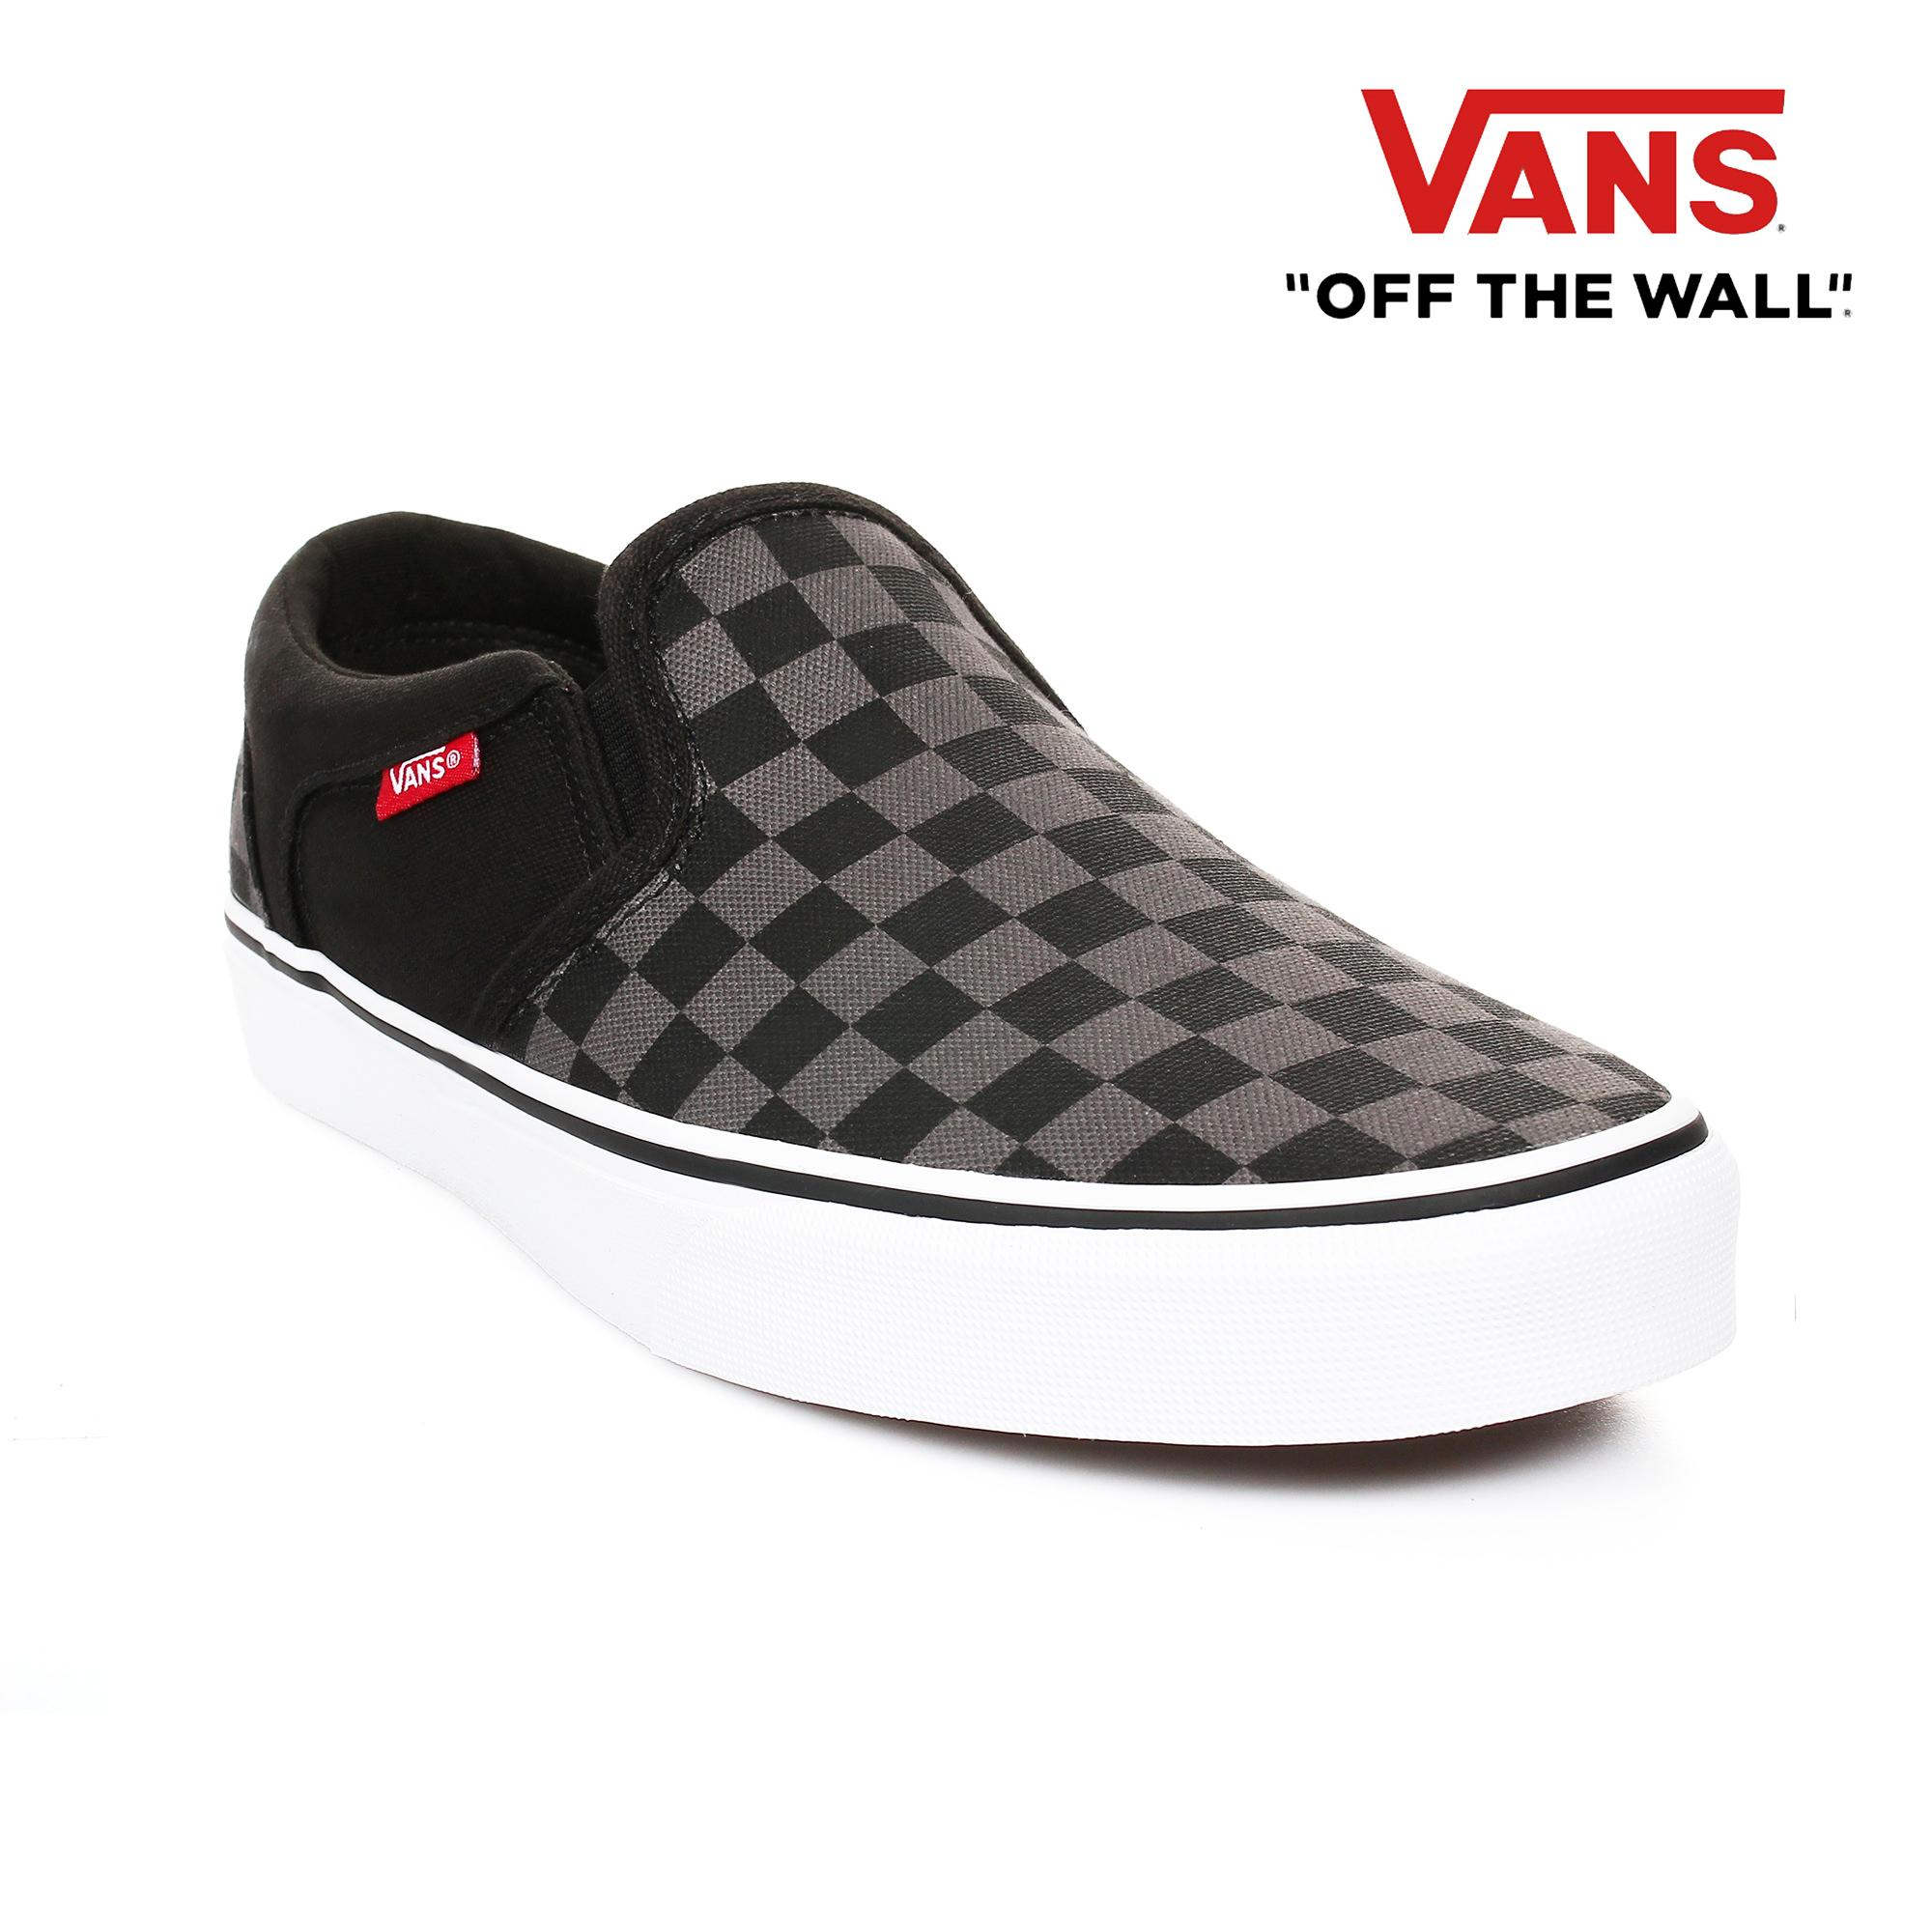 ec06165ea6ceb2 Vans Shoes for Men Philippines - Vans Men s Shoes for sale - prices ...